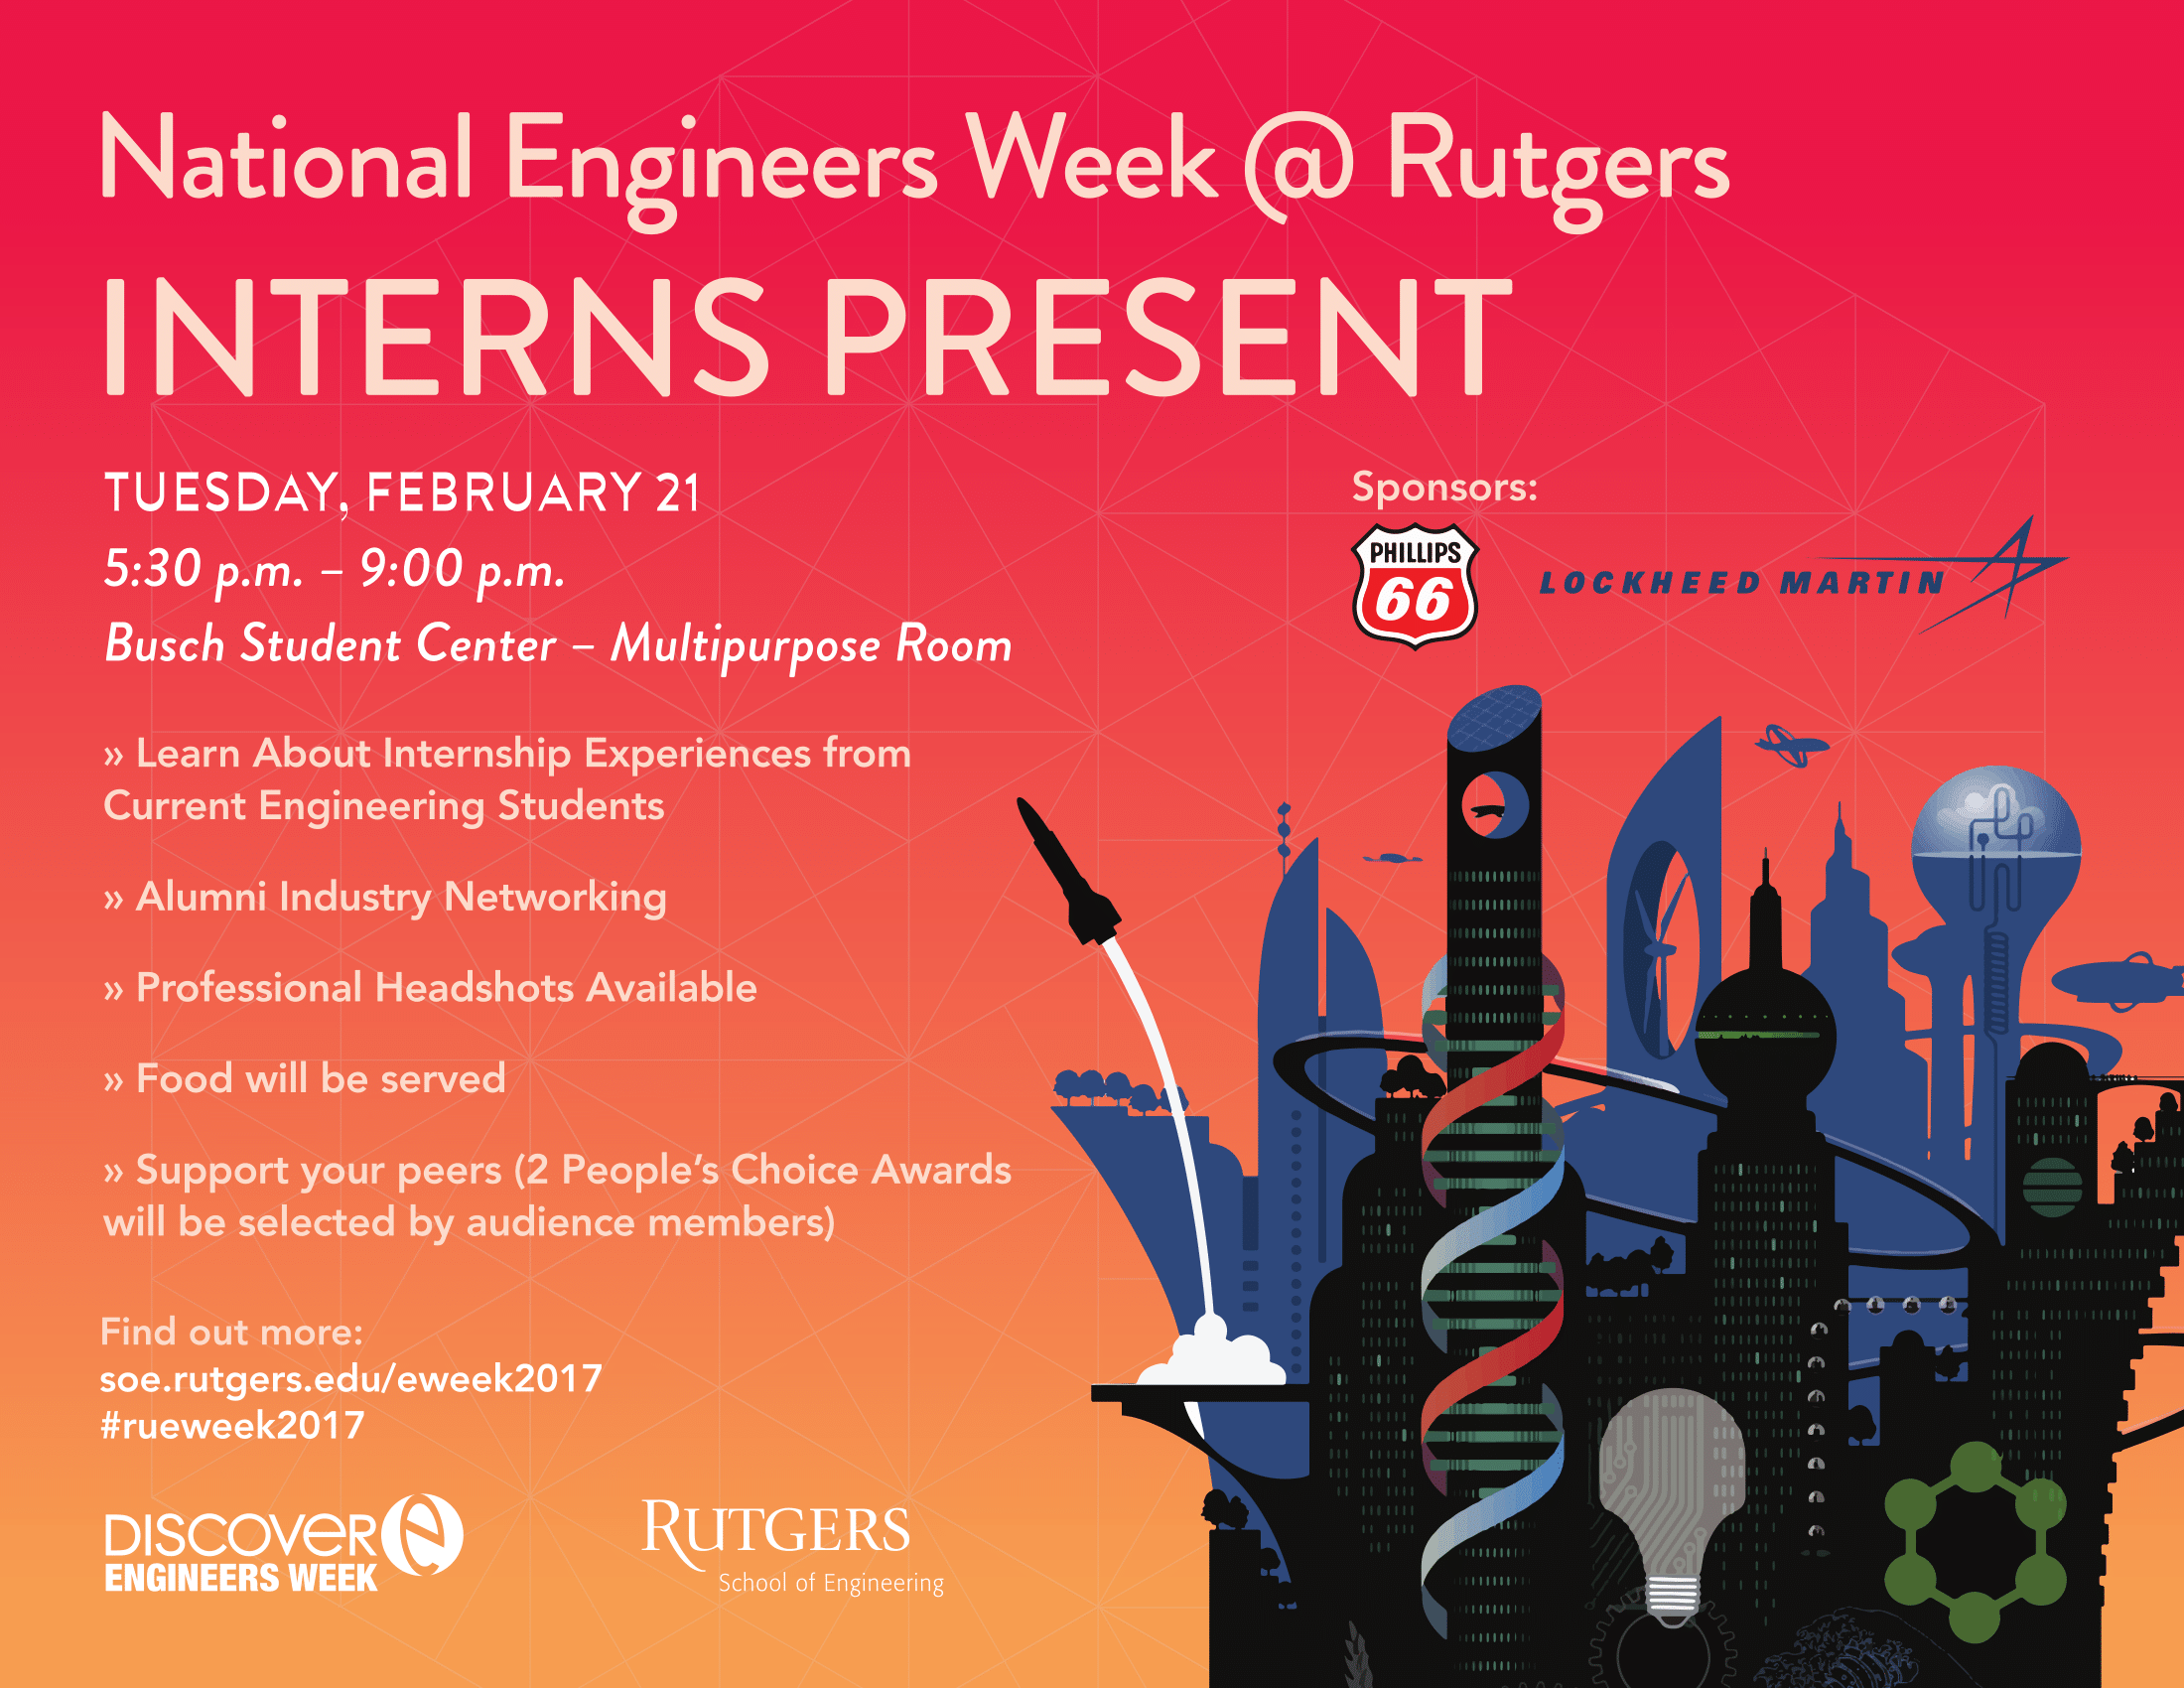 eweek_flyer_interns-present-1.png